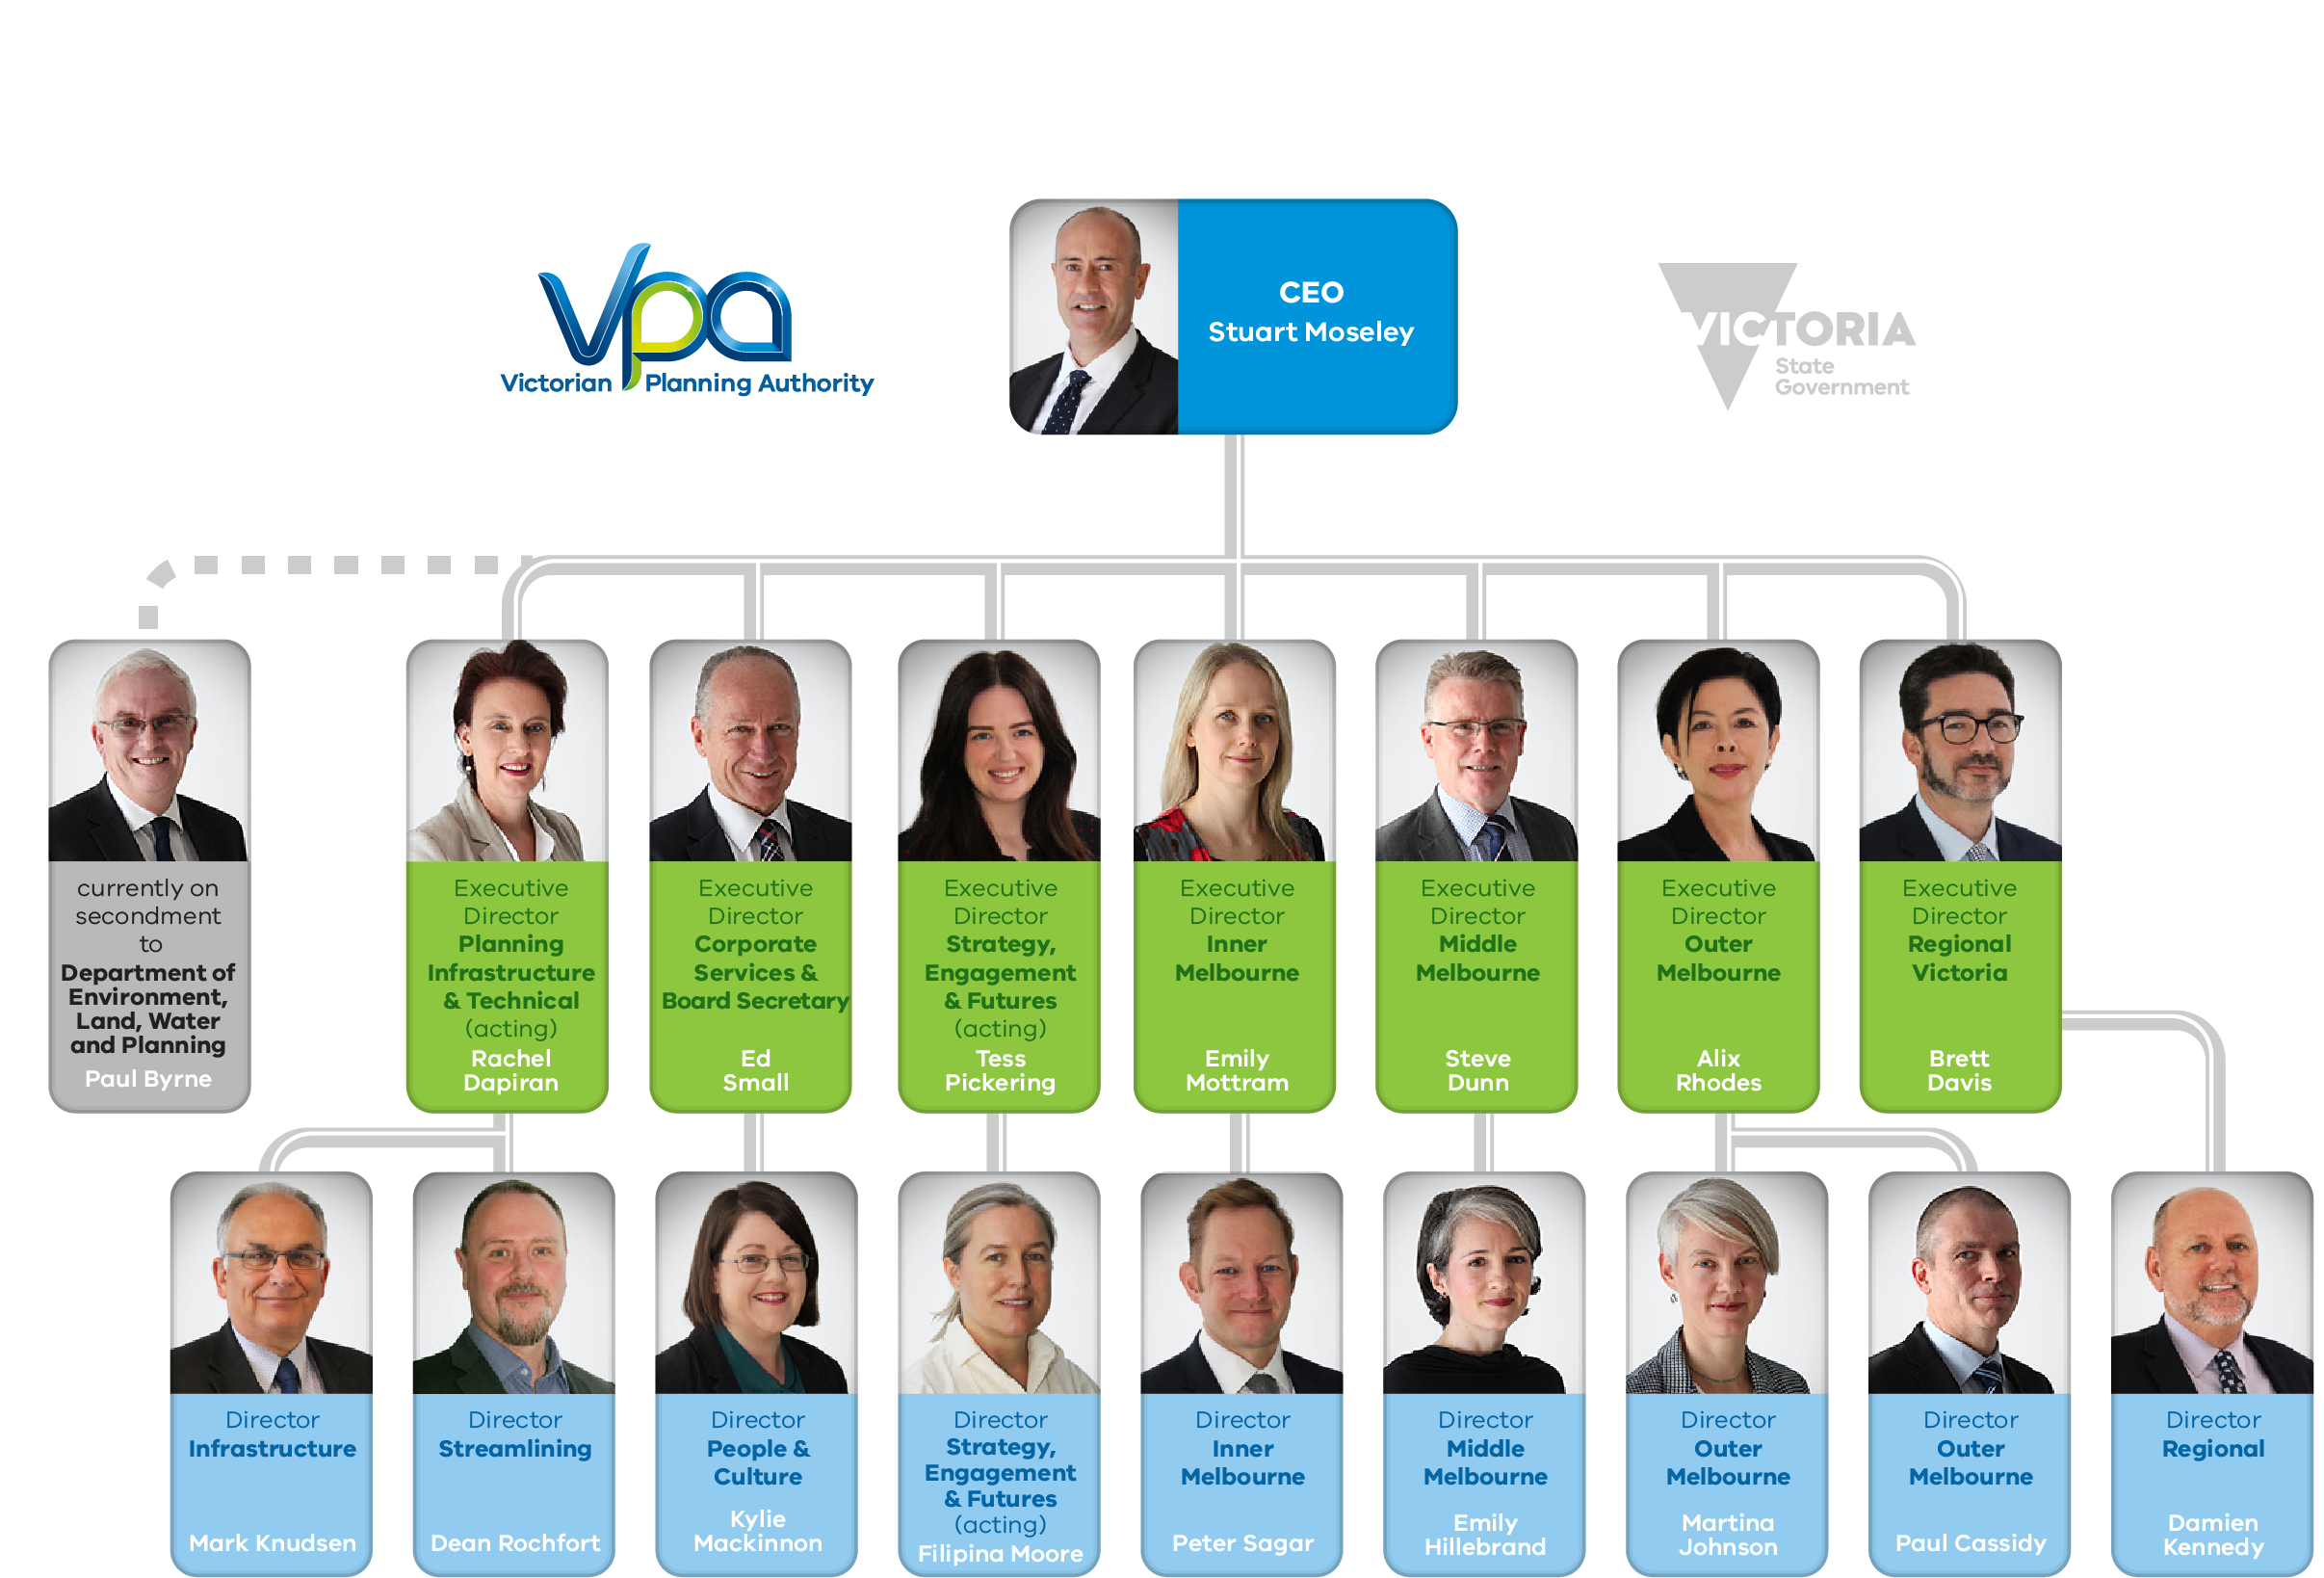 This is an image of the VPA's executive team